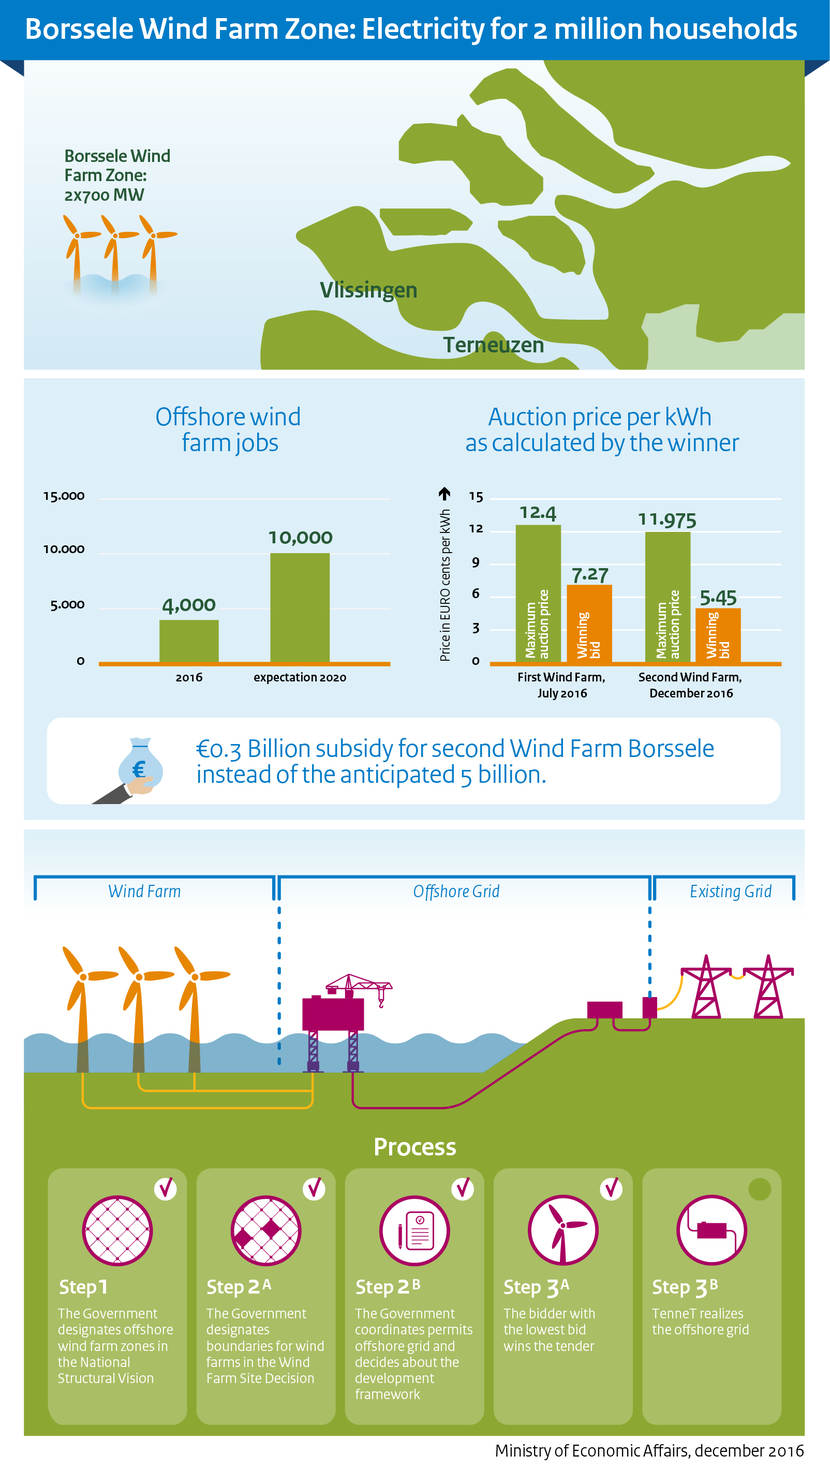 Infographic Borssele wind farm zone: elektricity for 2 million households